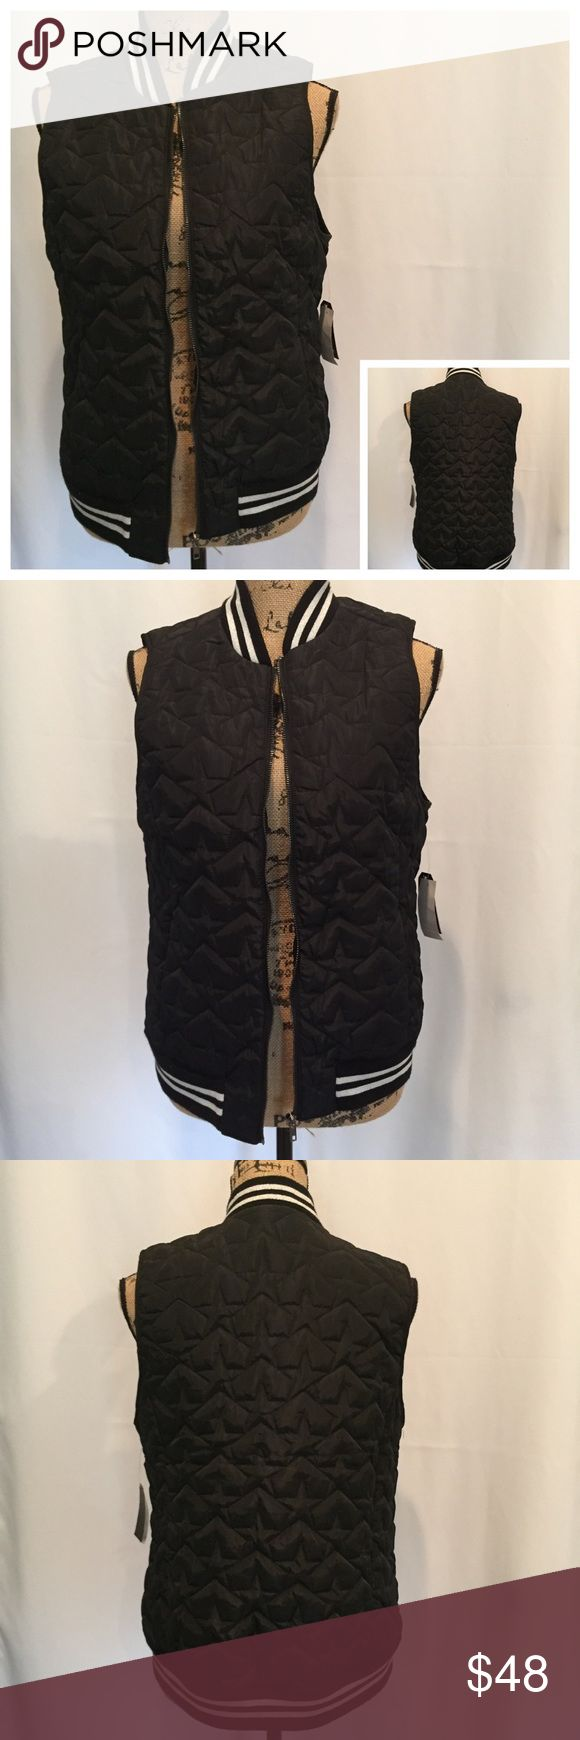 """🆕🎁 Kensie Jeans Black Star Quilted Vest NWT KENSIE JEANS Black Silver Star Quilted Vest Size: Medium  Brand New With Tags  MSRP: $68.00 Stretch Knit Trim, Quilted Tonal Star Pattern, Zip Front Measurements Without Stretching: Armpit To Armpit: 19.5"""" Length: 24"""" (From Top Of Shoulder) Machine Wash Cold, Tumble Dry Low  🎁 Great Gift Idea! 🎁 Smoke Free Home Kensie Jackets & Coats Vests"""